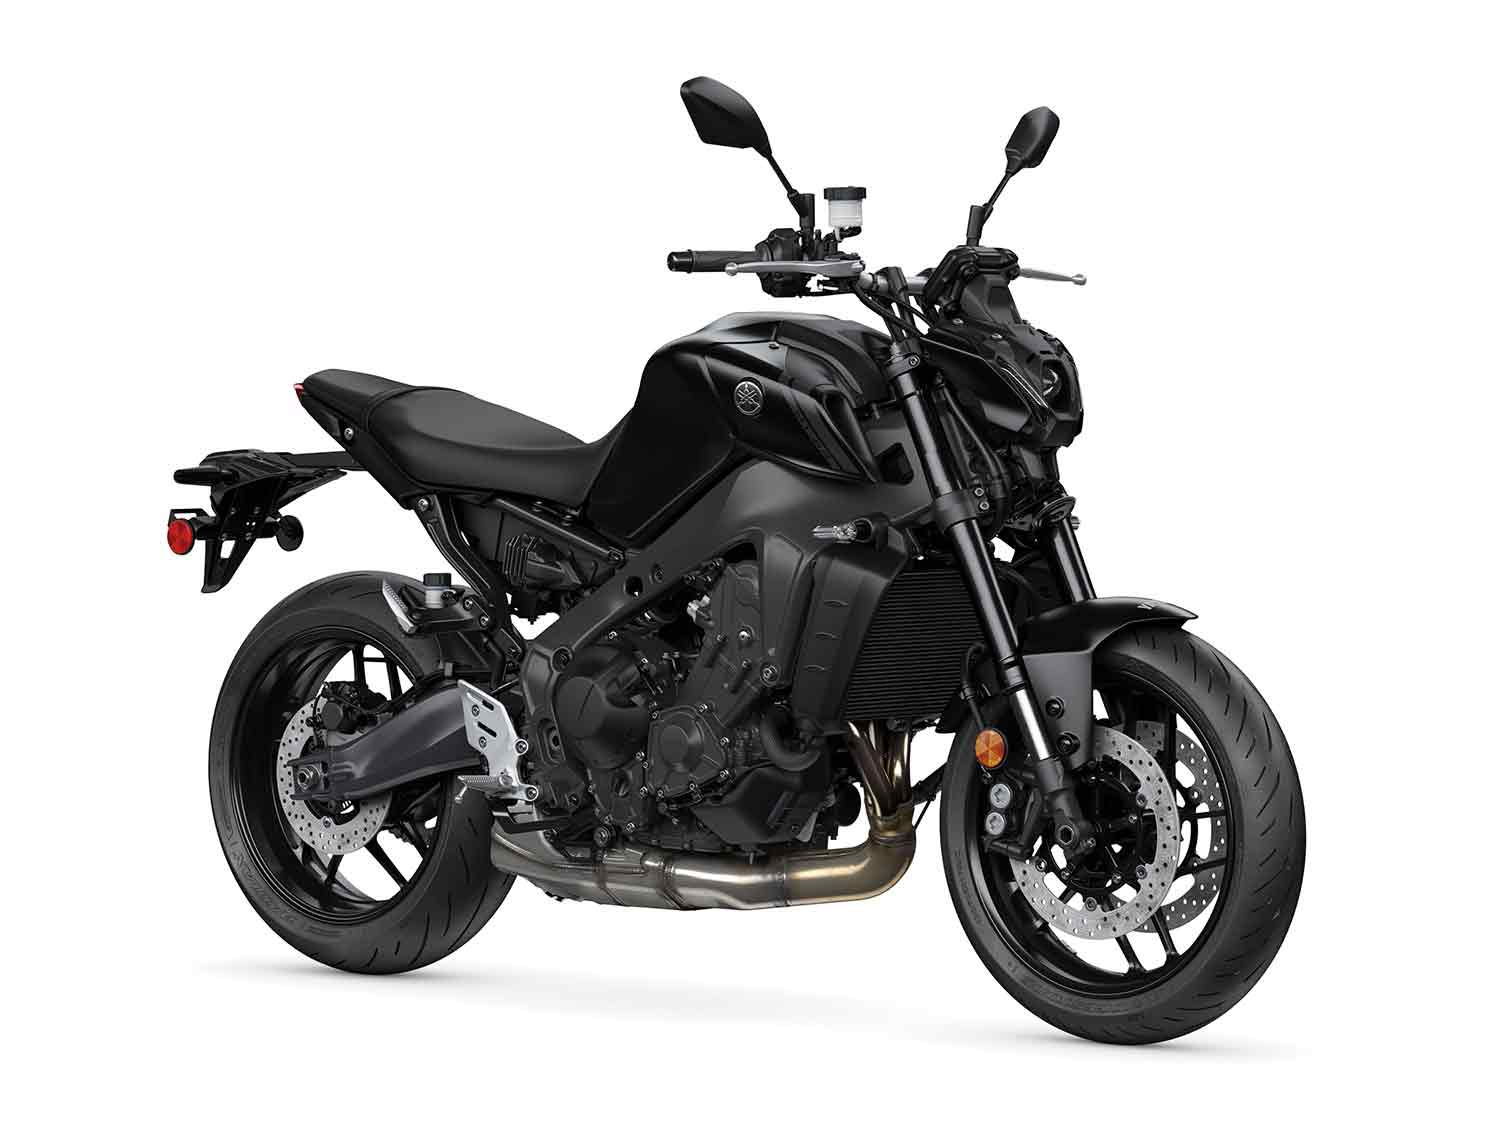 2021 Yamaha MT-09 in Raven Black colorway.